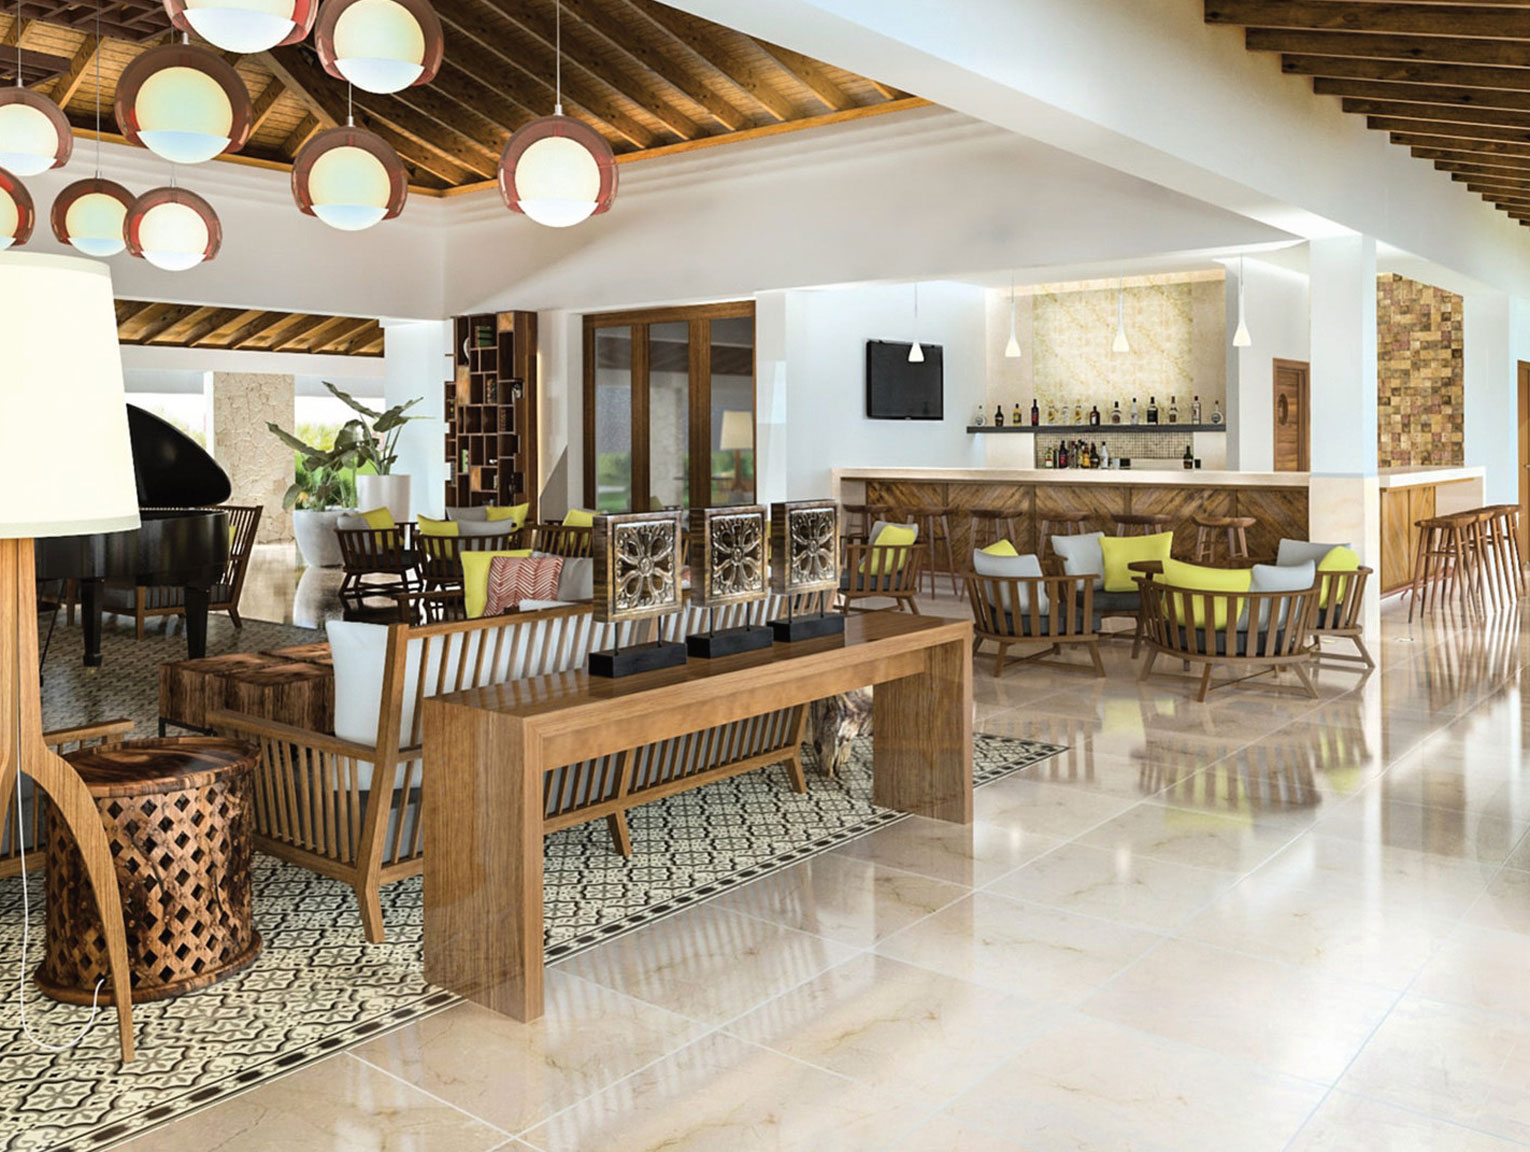 CCC-Coral-Level-at-Iberostar-Selection-Esmeralda-Bar-La-Hacienda-001